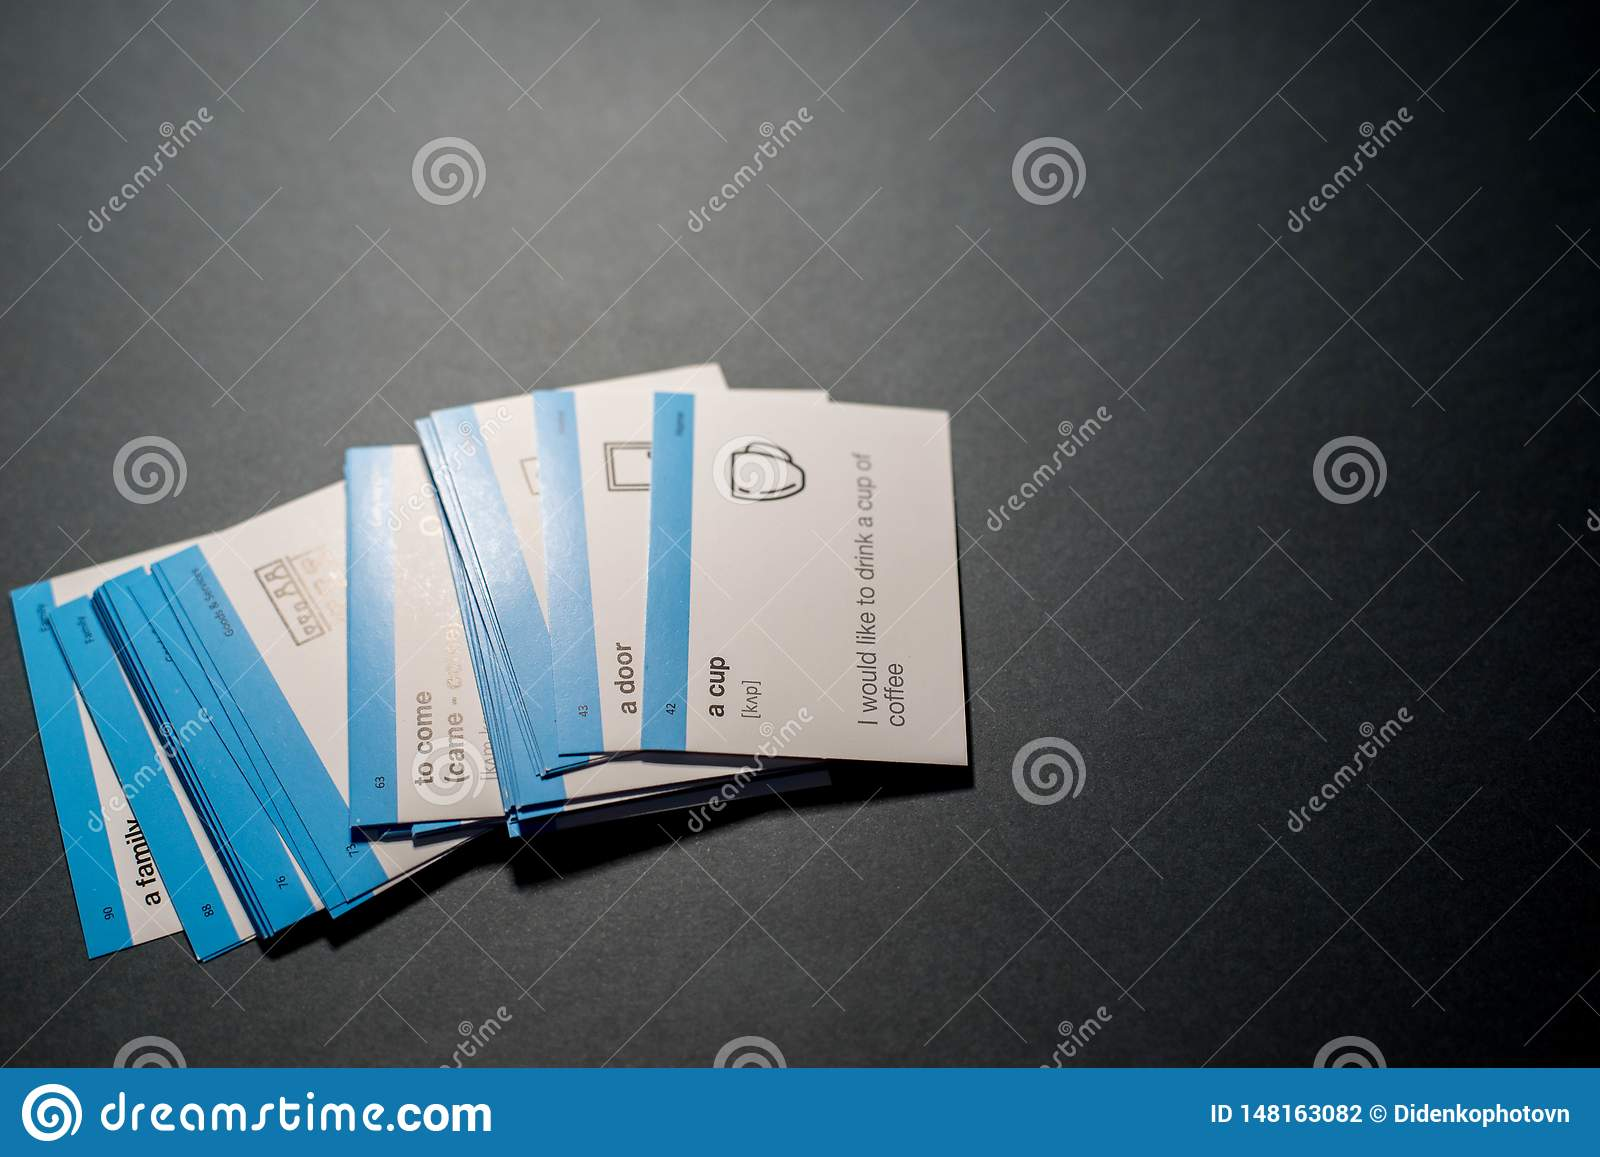 Cards for learning English